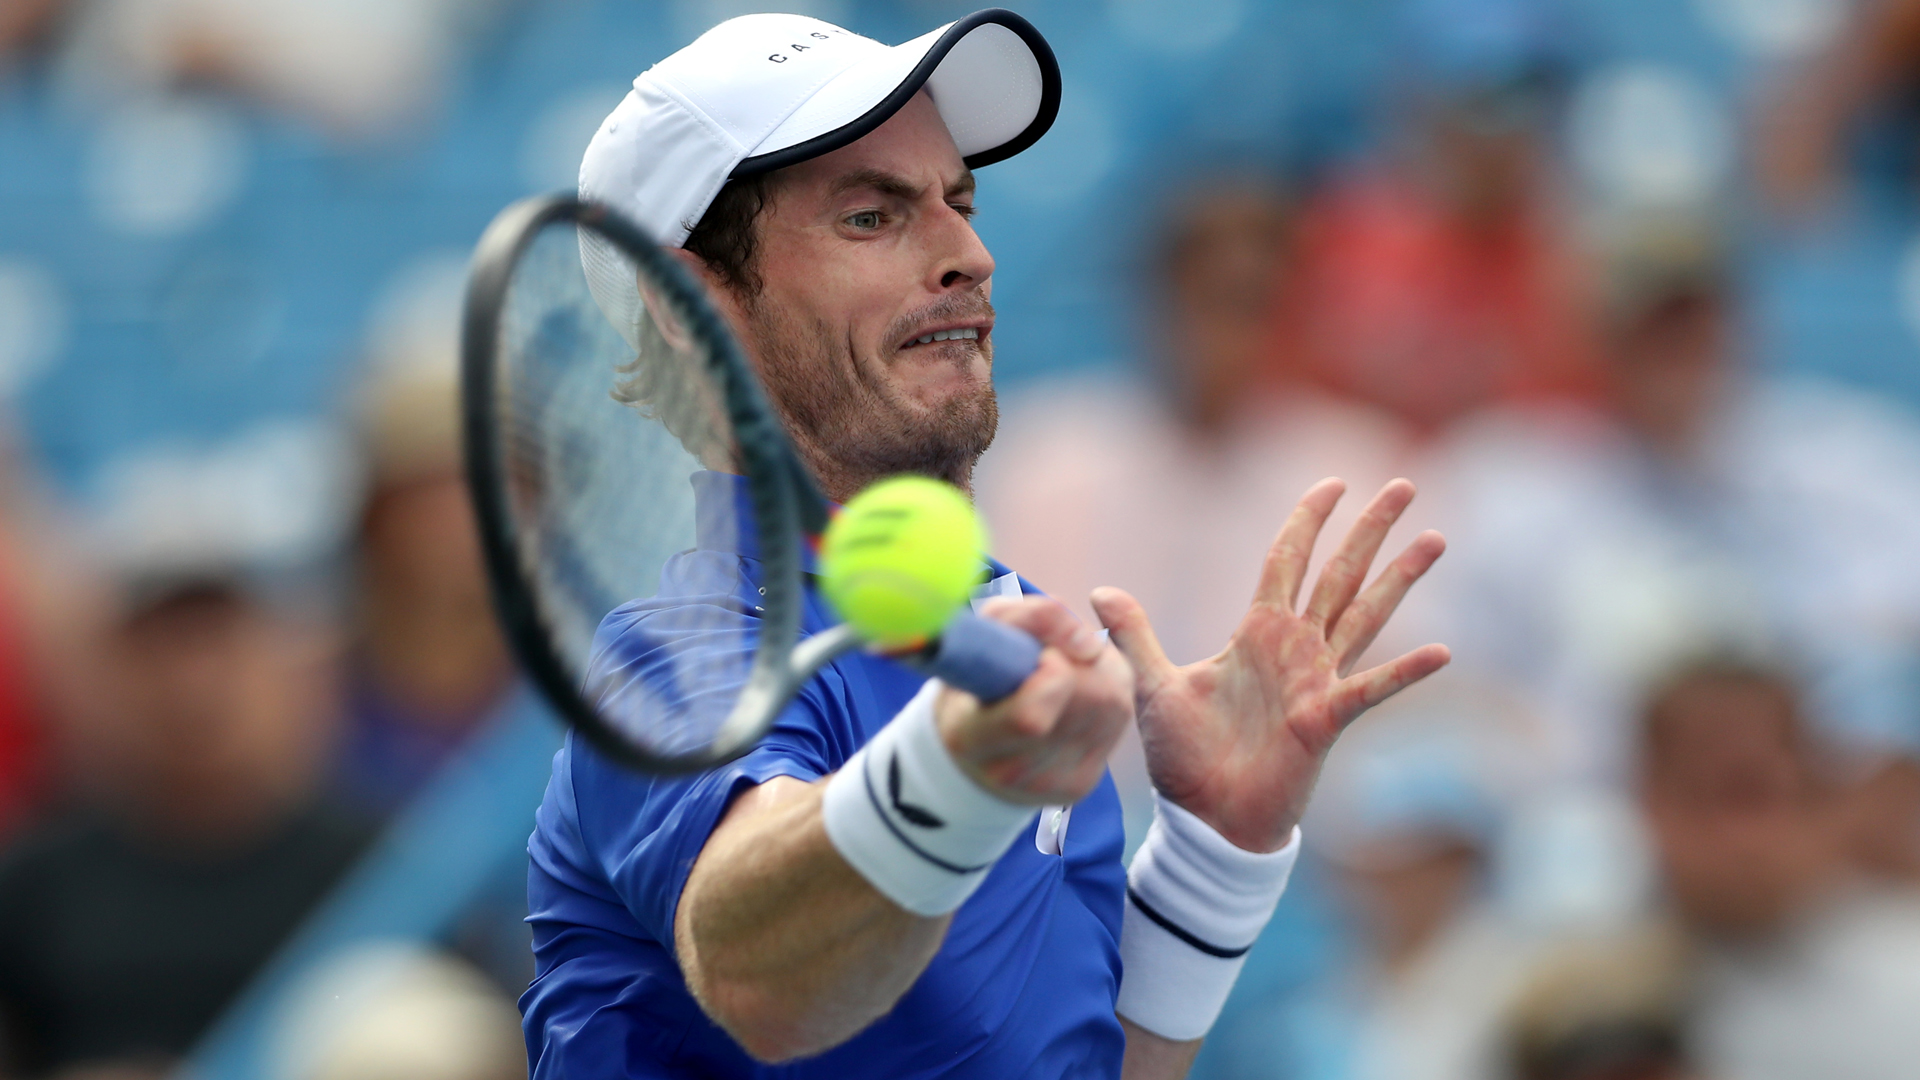 Andy Murray beaten at Winston-Salem Open as singles return continues